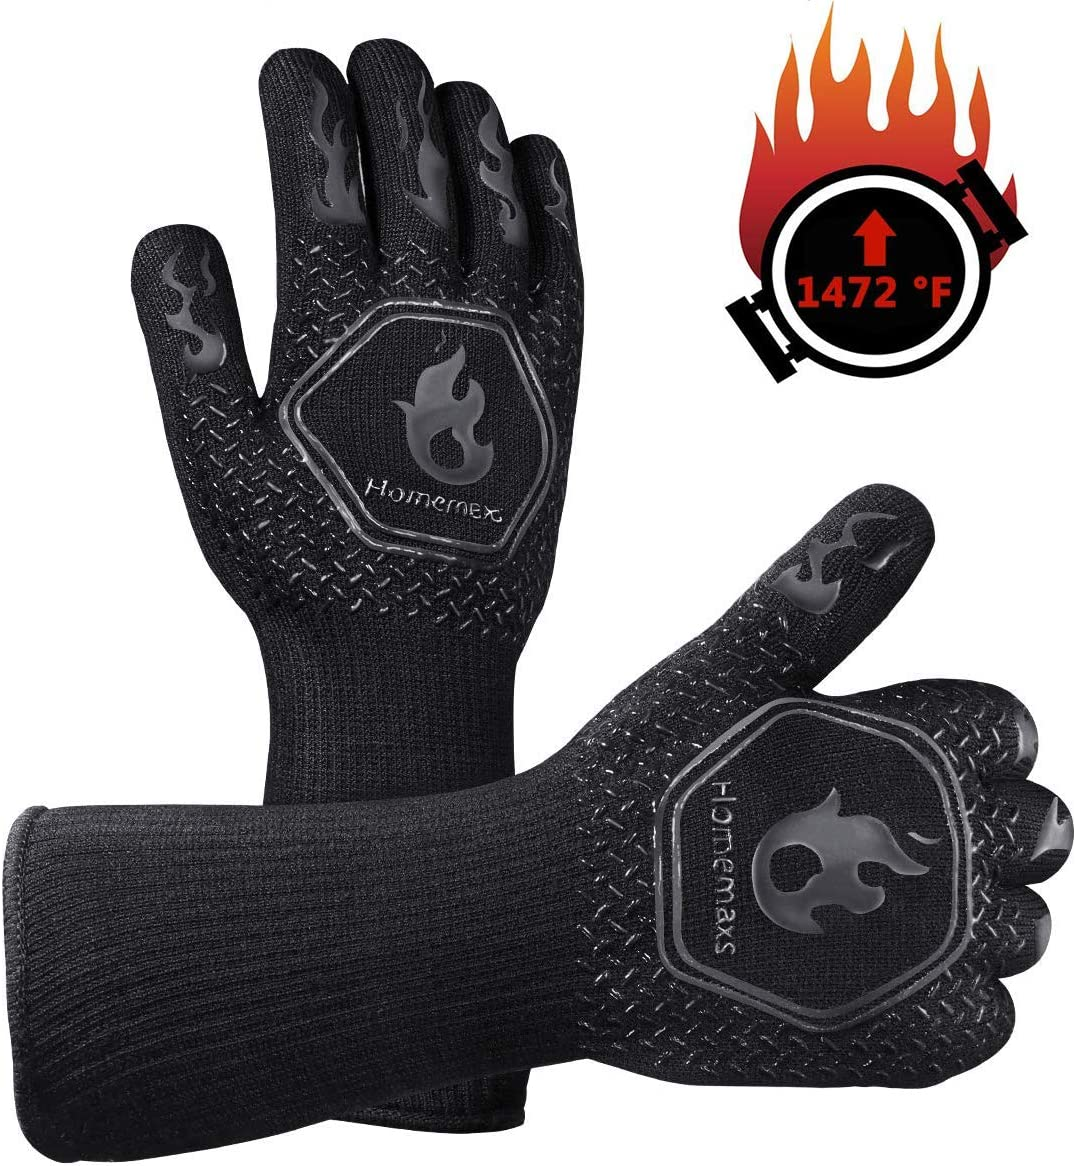 Homemaxs BBQ Gloves 1472℉ Extreme Heat Resistant Grill Gloves, Food Grade Kitchen Oven Mitts, Silicone Non-Slip Cooking Gloves for Barbecue, Cooking, Baking, Welding, Cutting, 14 Inch (Style 2-Black)